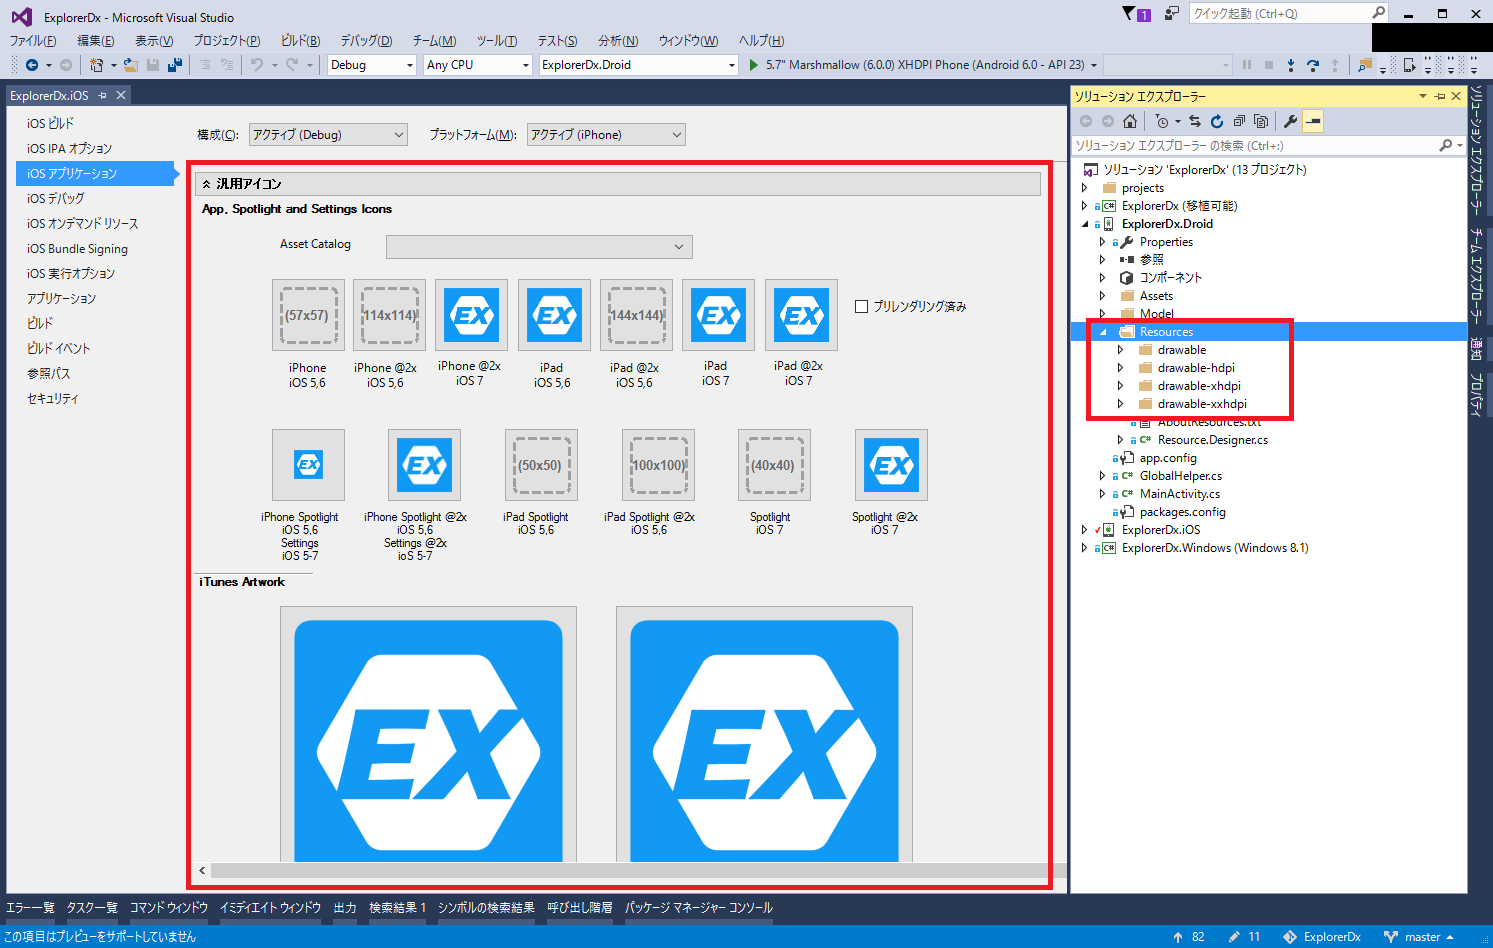 xamarin_icon_size_01.png